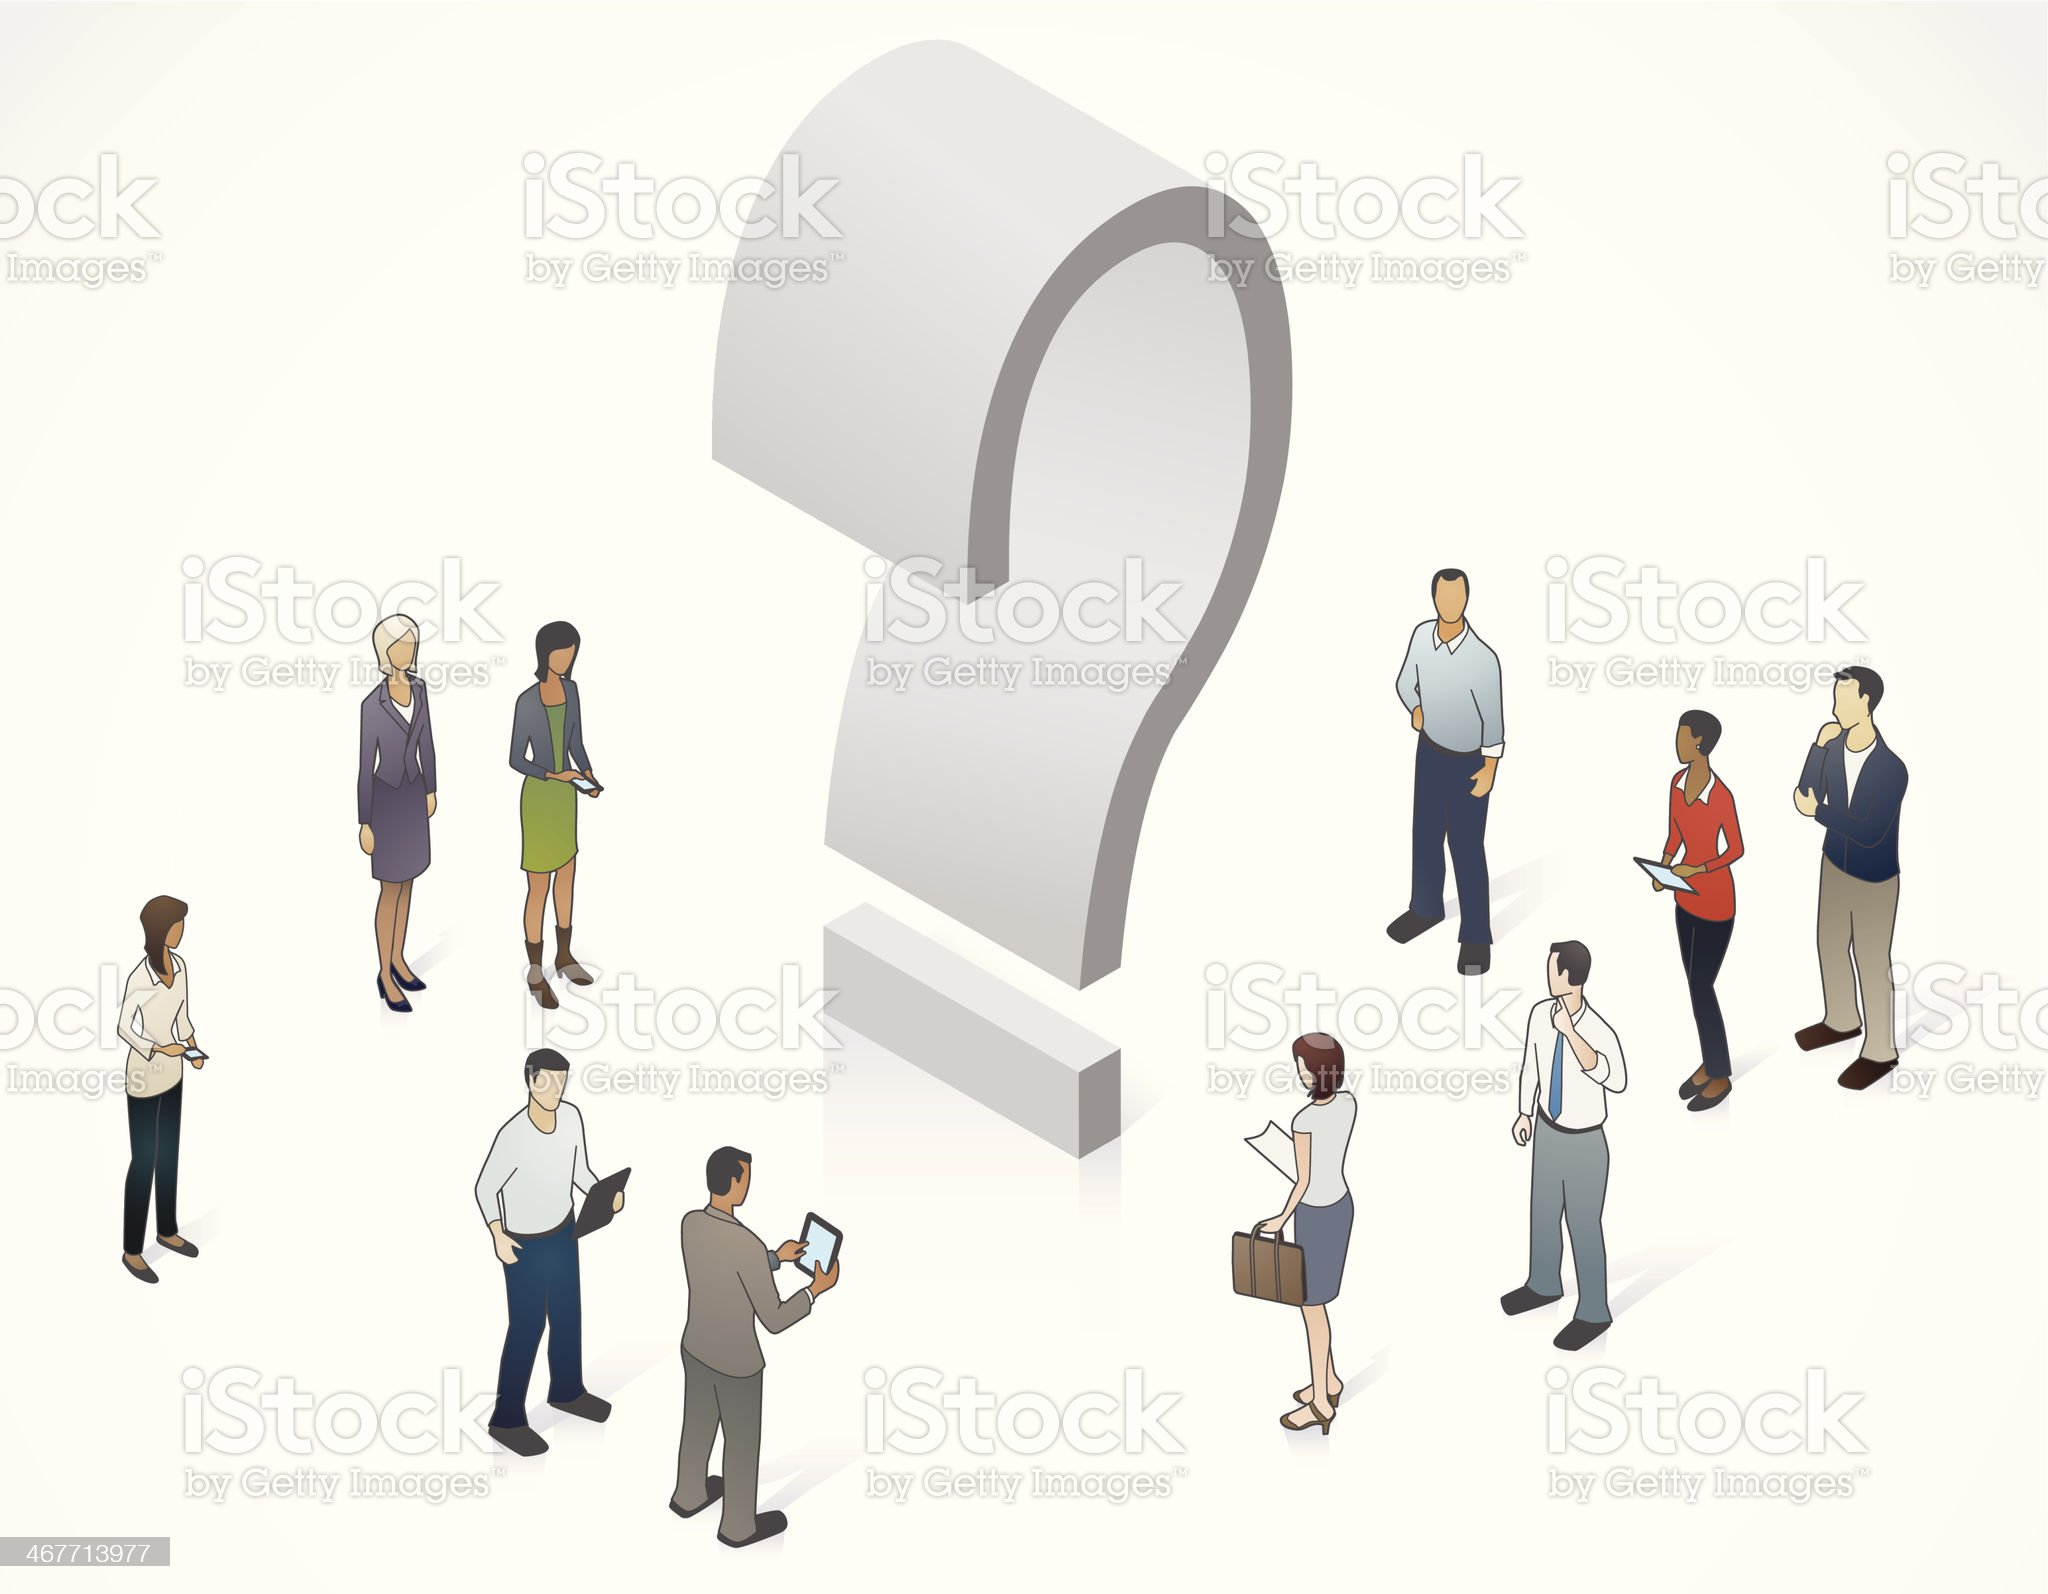 Question Mark with People Illustration royalty-free stock vector art